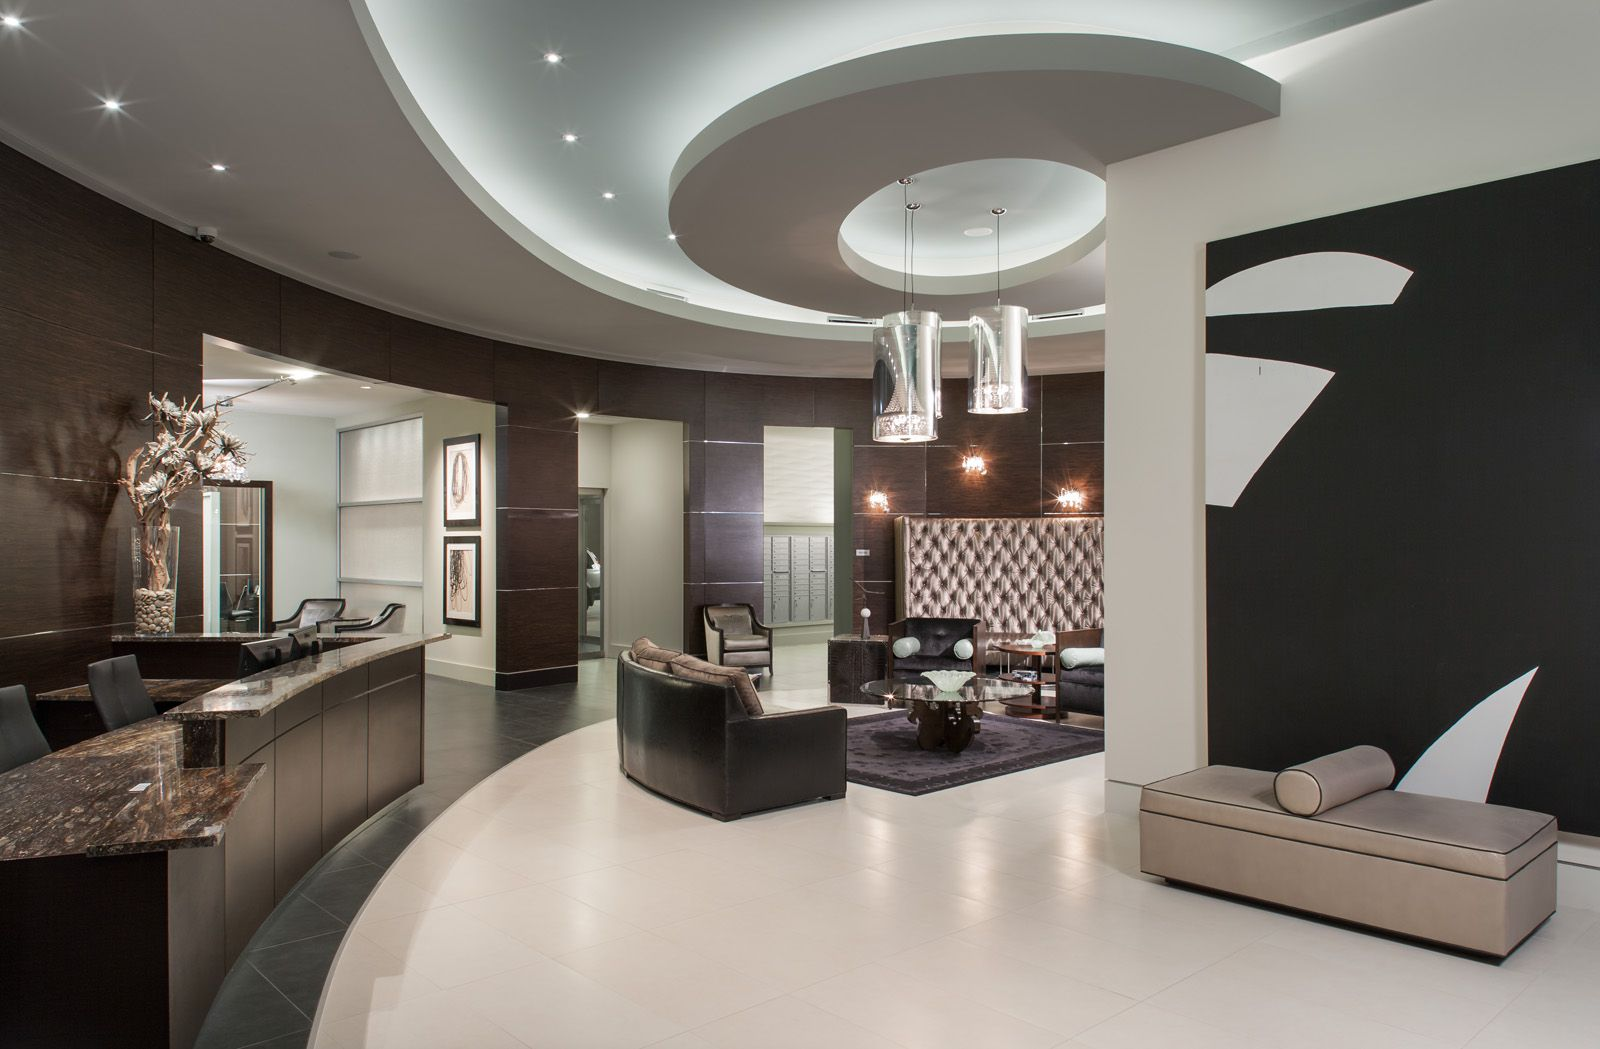 Designed by Faulkner Design Group clubroom lobby